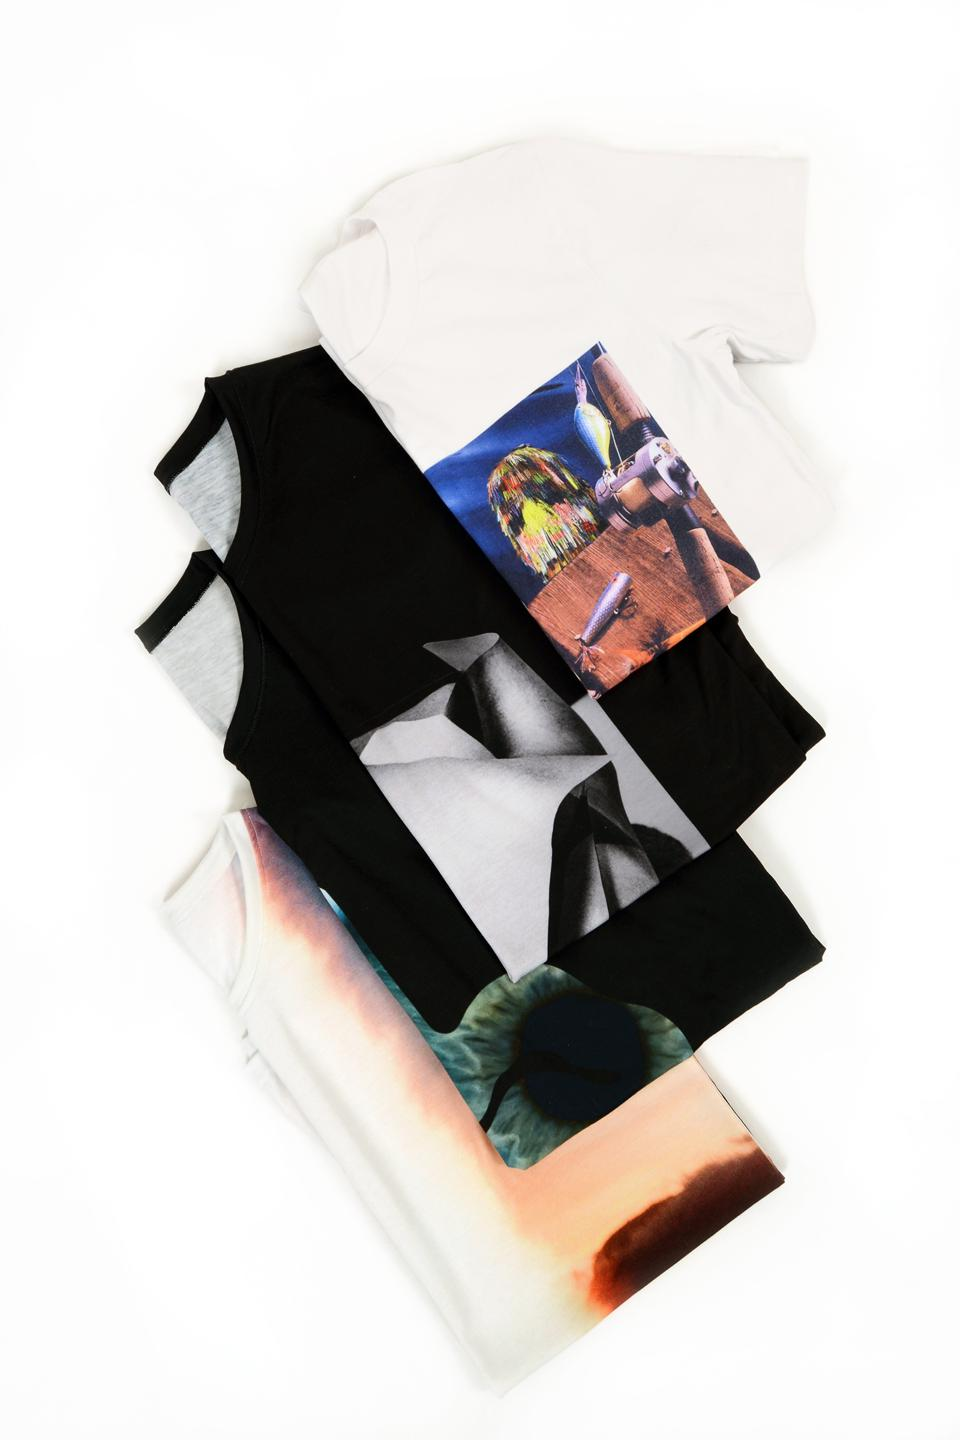 A collection of artist limited edition t-shirts